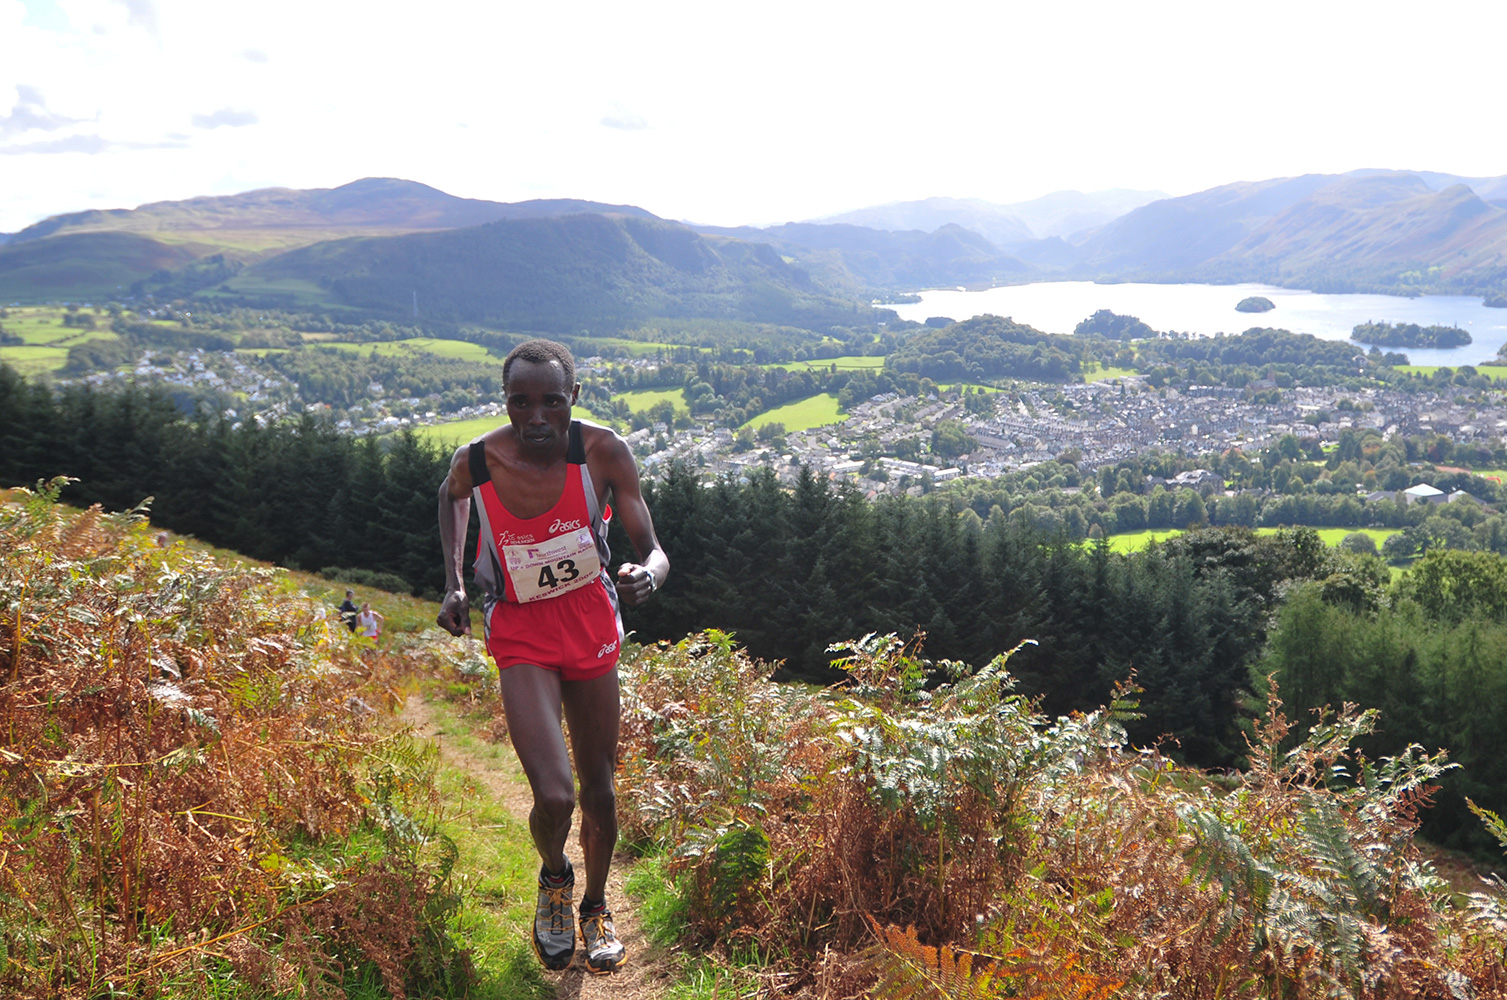 I shot this event for the I.A.U. in Keswick in September 2009. This is Wilson Chemweno of Kenya in the lead and heading for victory on his second lap in the mens' up and down mountain race.